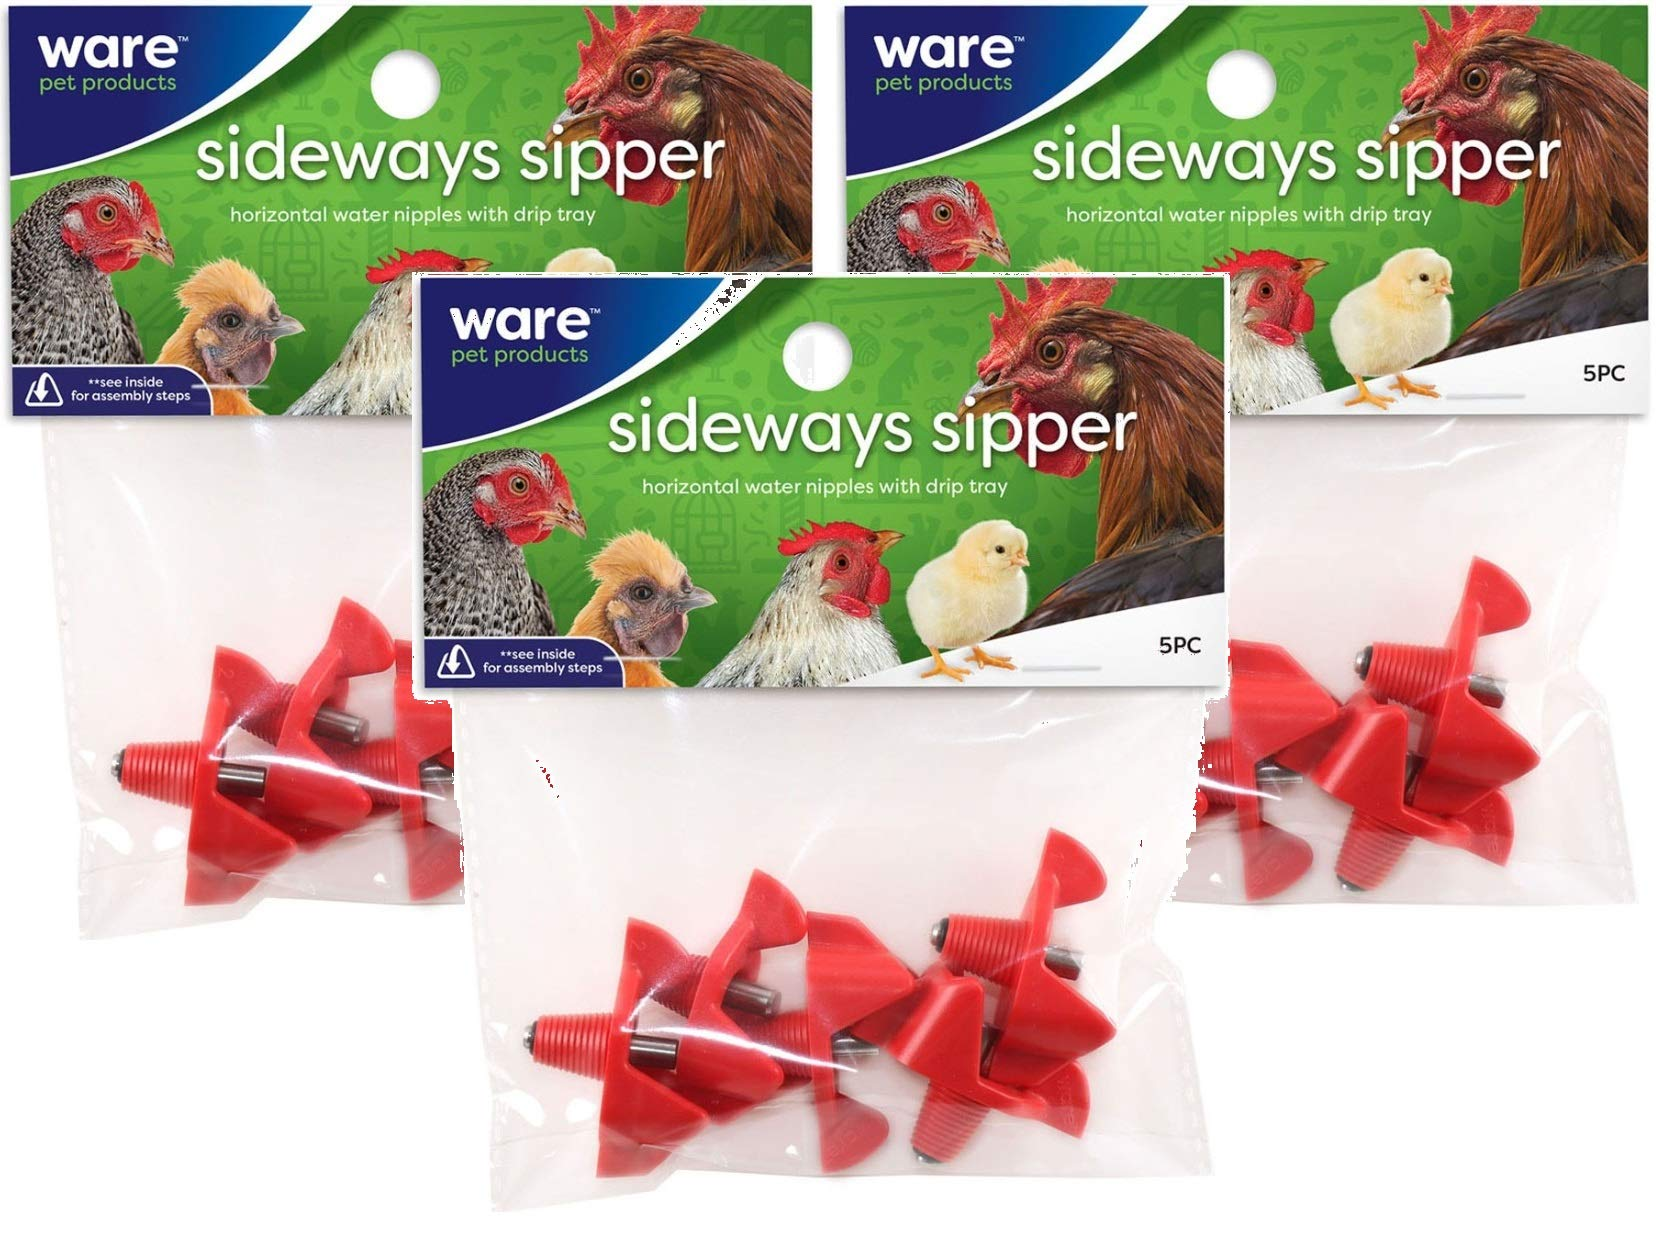 Ware 3 Pack of Sideways Sipper Horizontal Water Nipples, 5 Per Pack by Ware Manufacturing